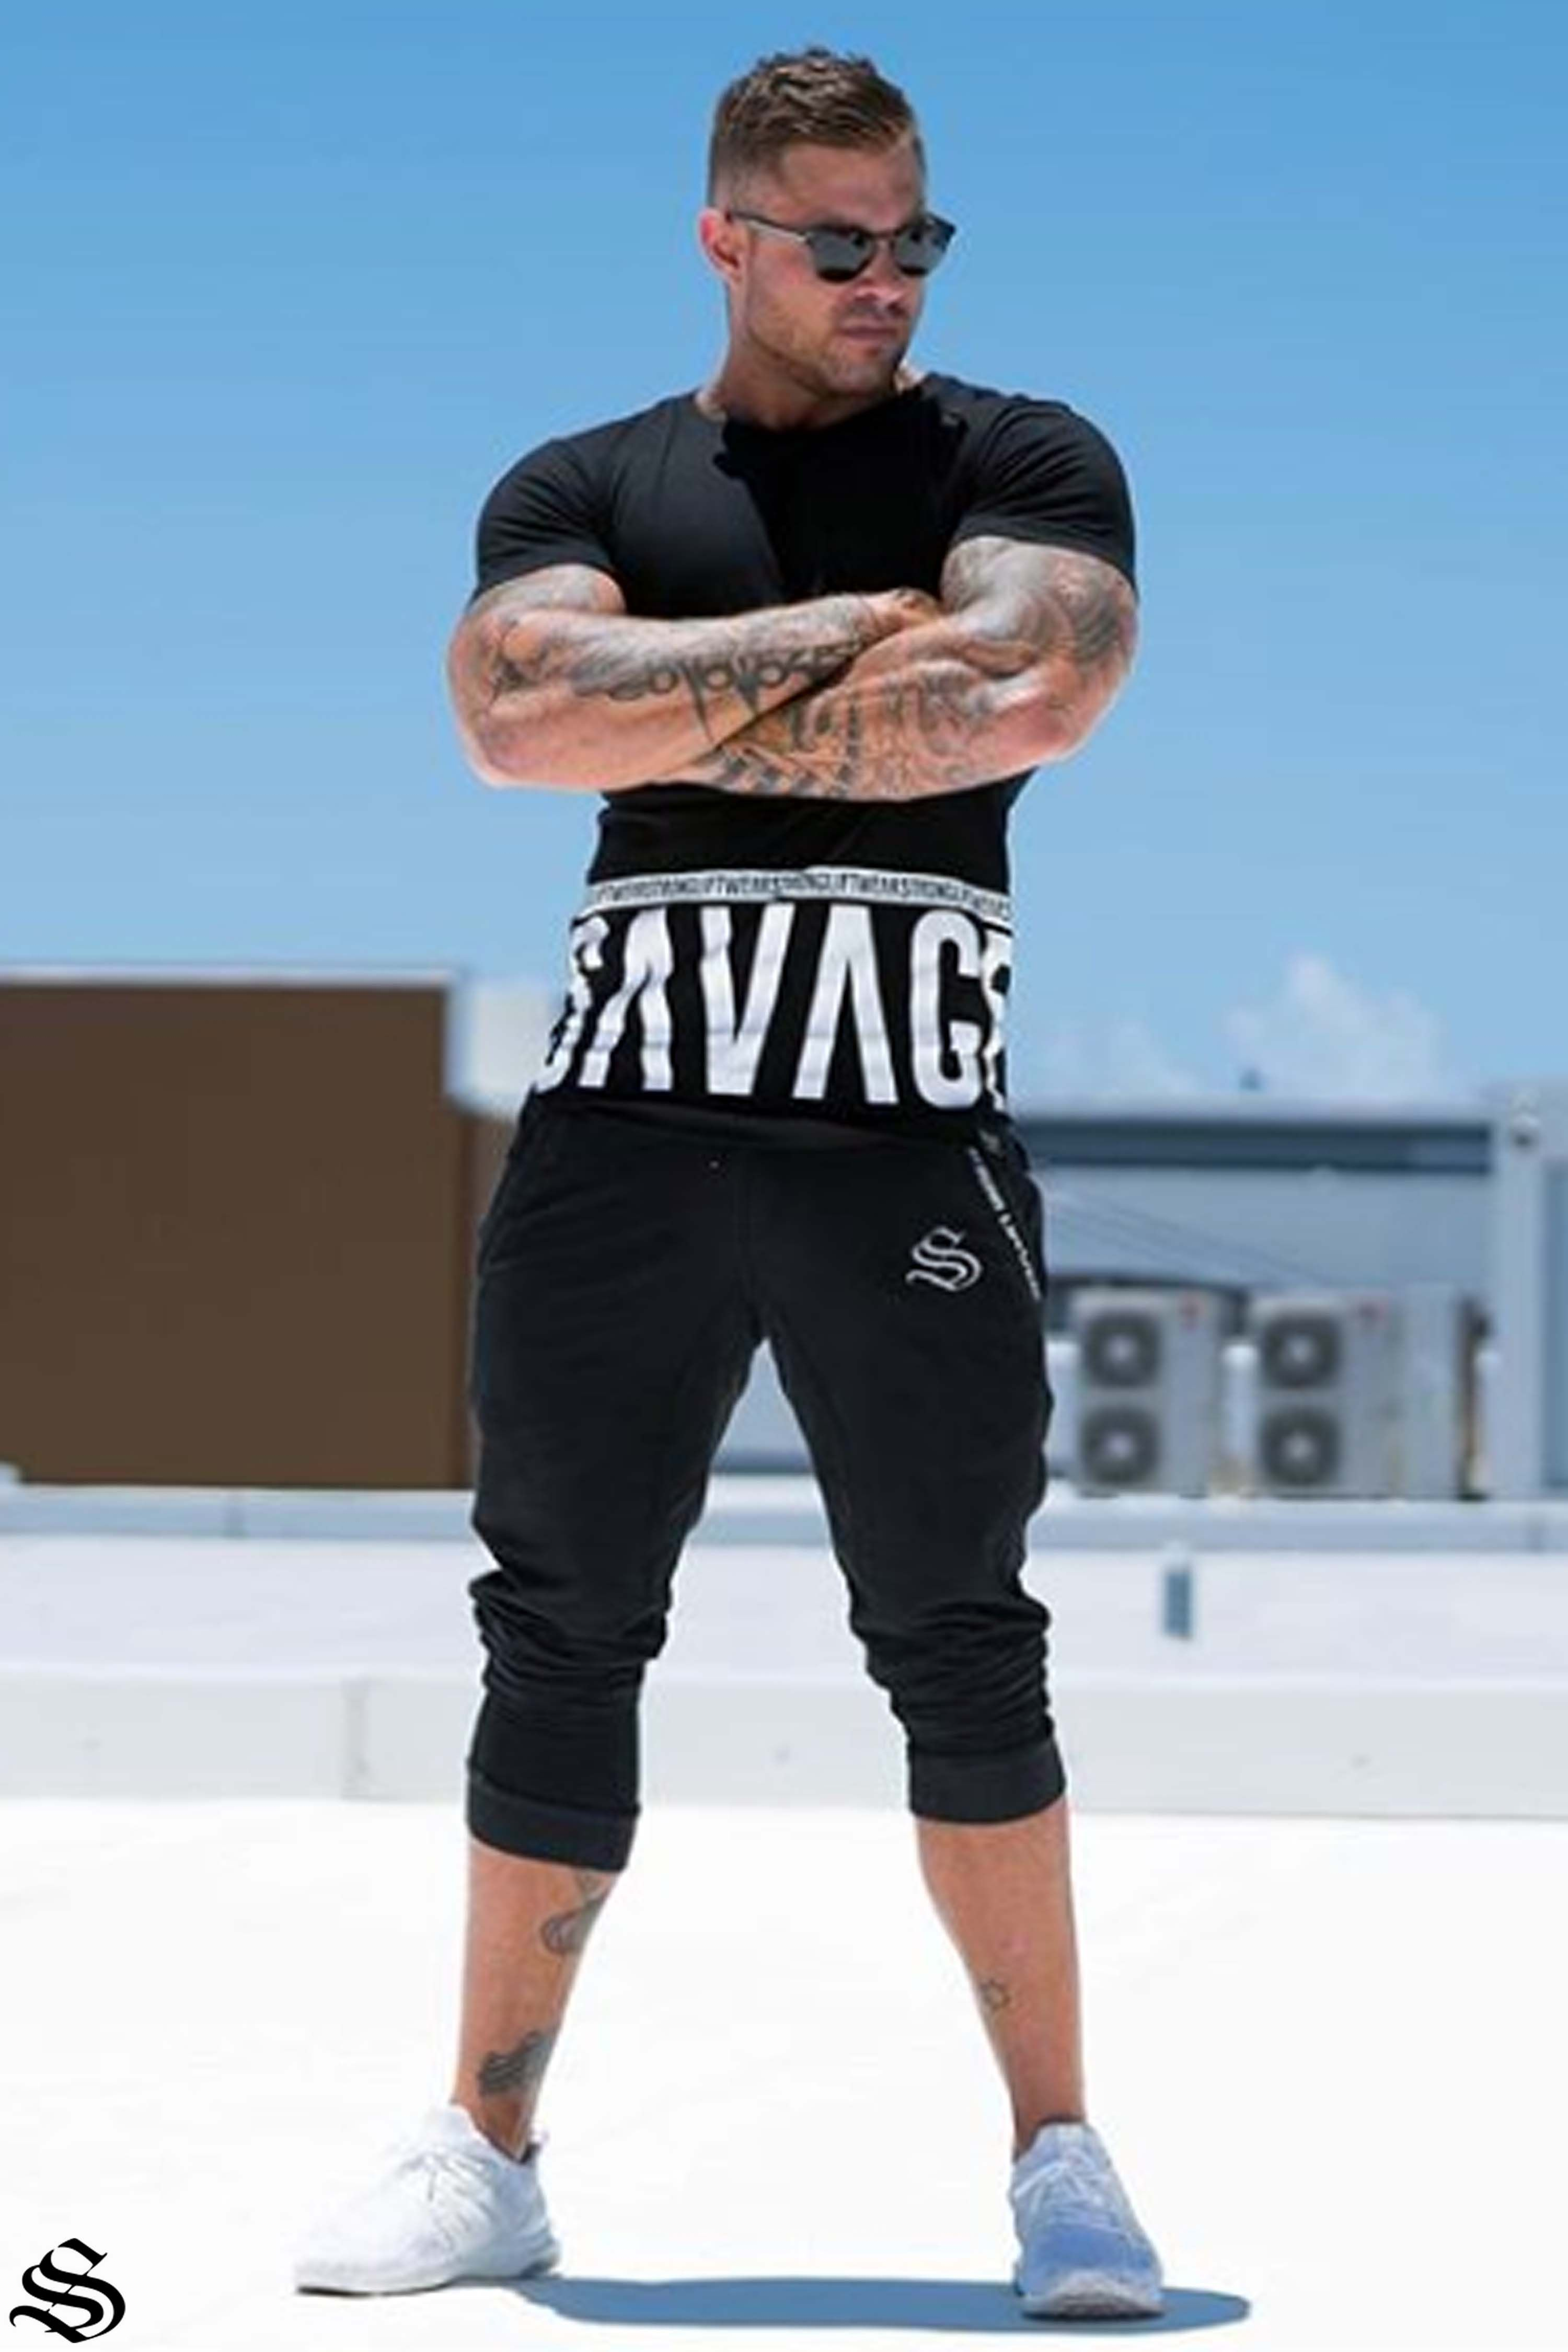 Strong Liftwear LIFT TEE Gym Wear For Lifters or casual wear